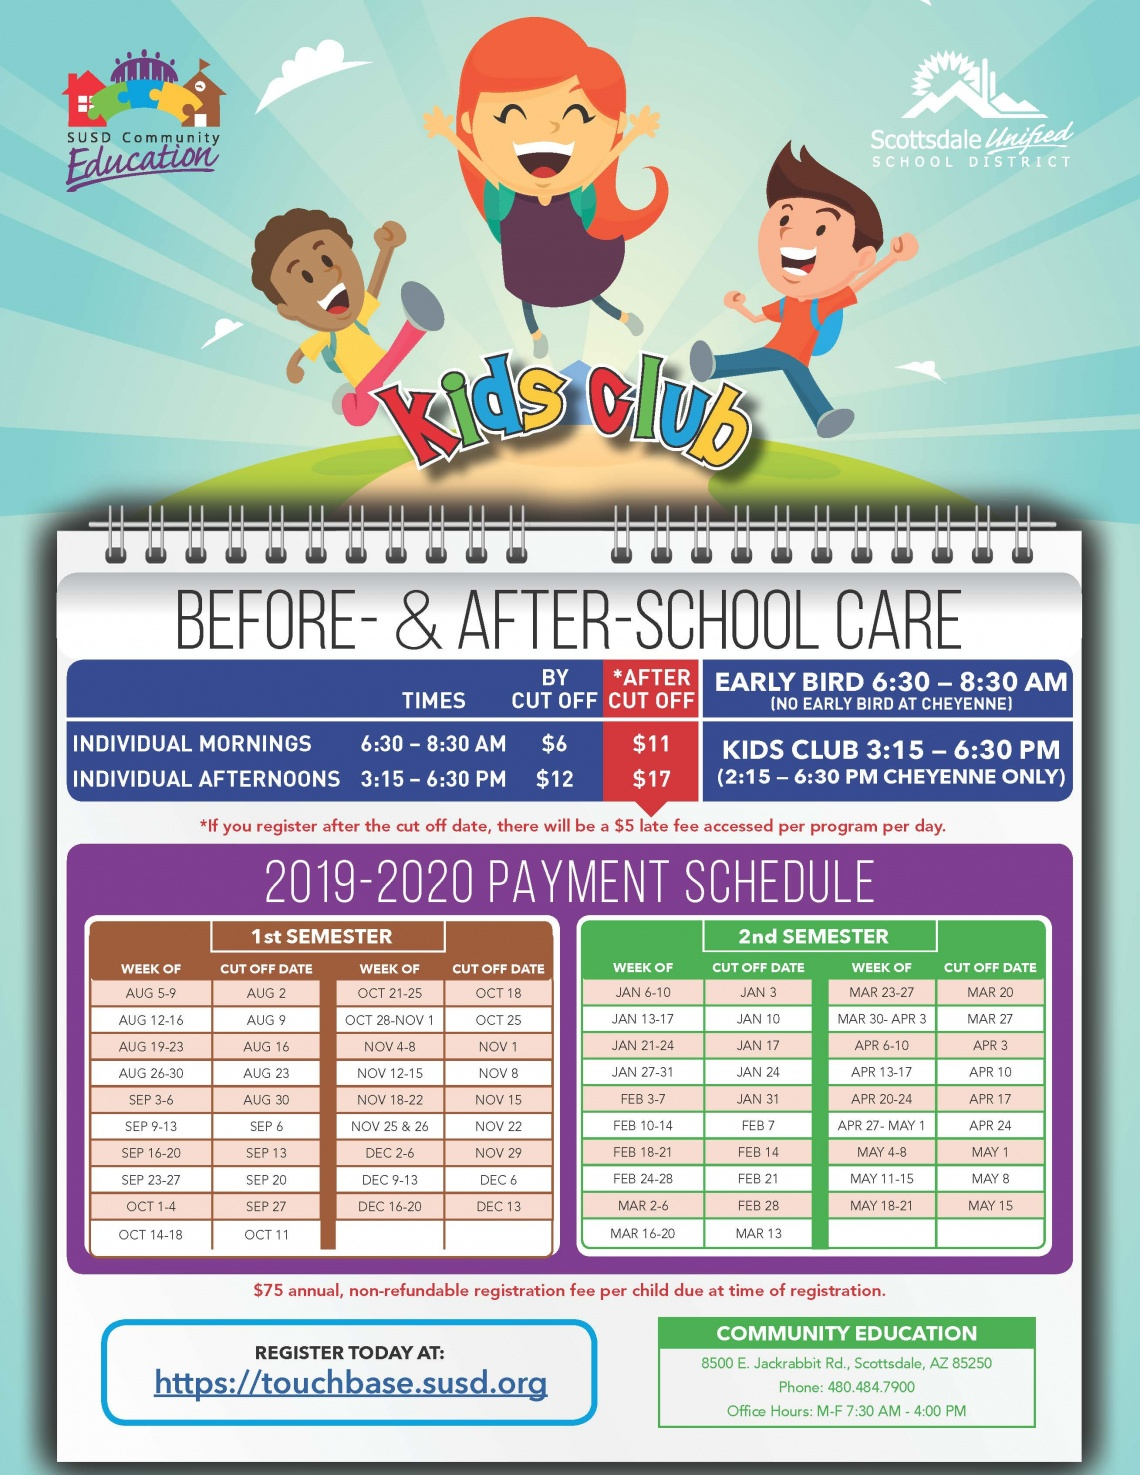 Community Education / Kids Club With Regard To Scottsdale Unified School District Calendar